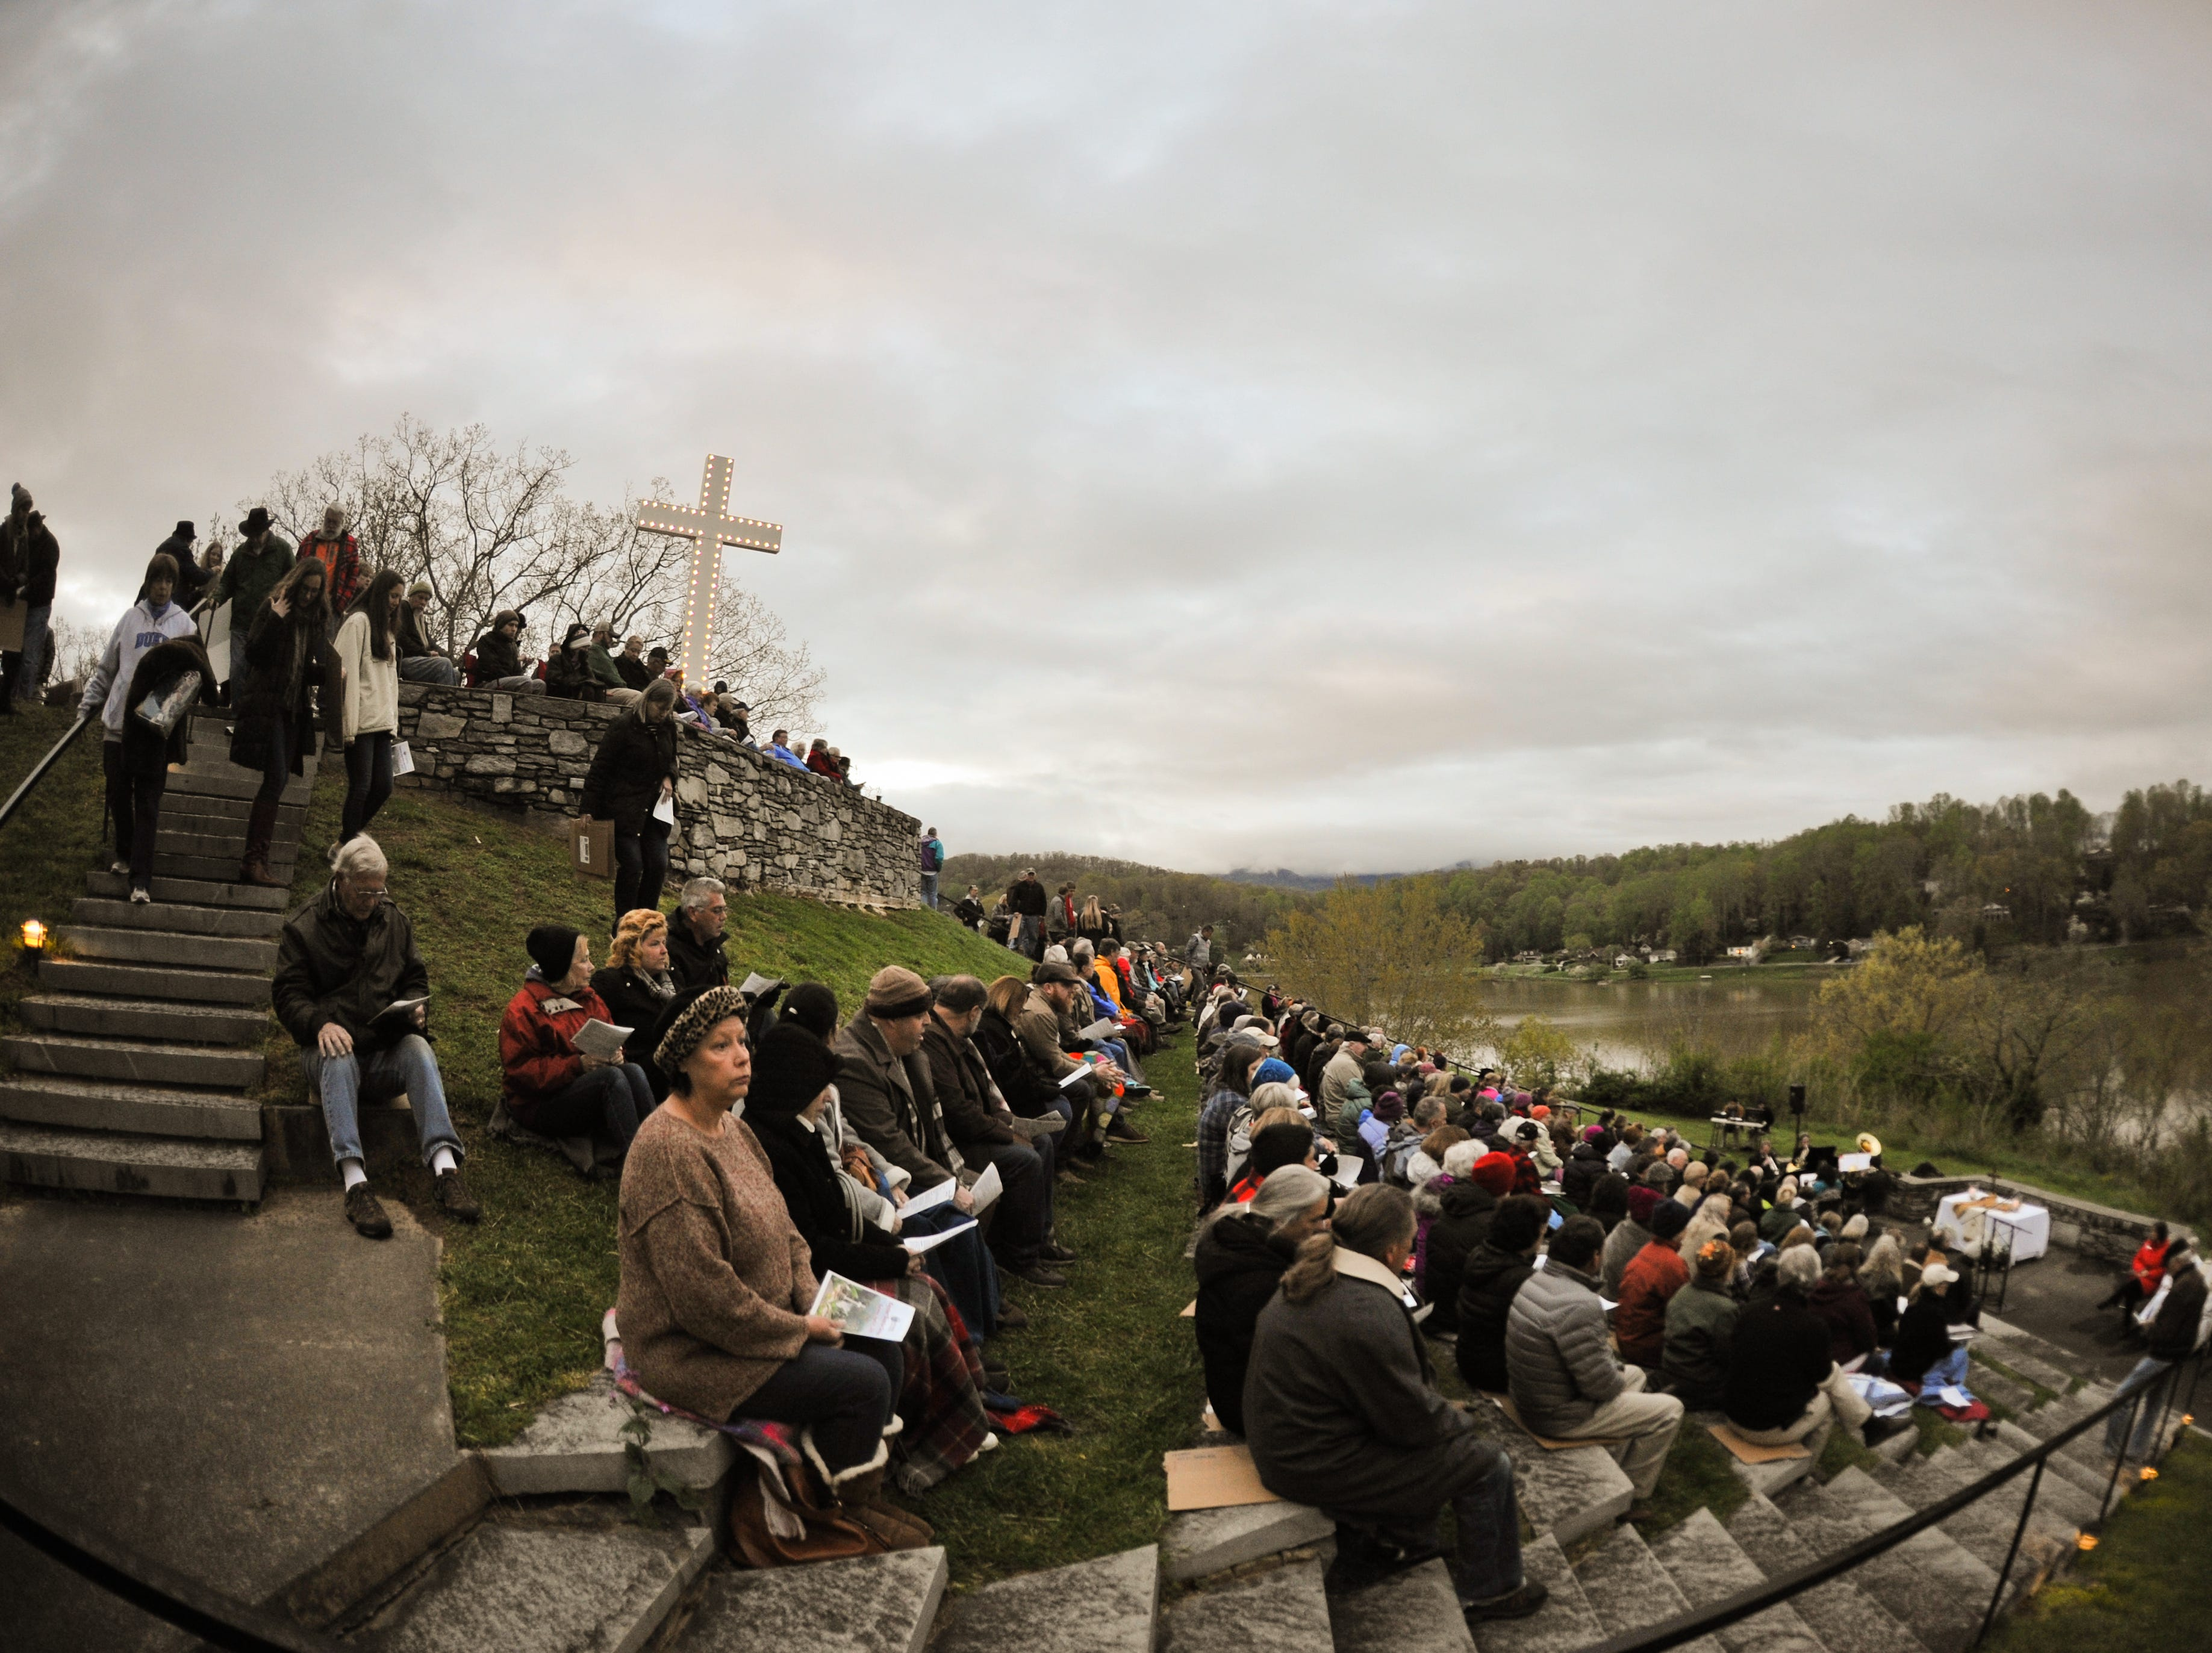 Scenes from the Easter Sunrise Service at the Lake Junaluska Conference and Retreat Center in Haywood County on April 21, 2019.